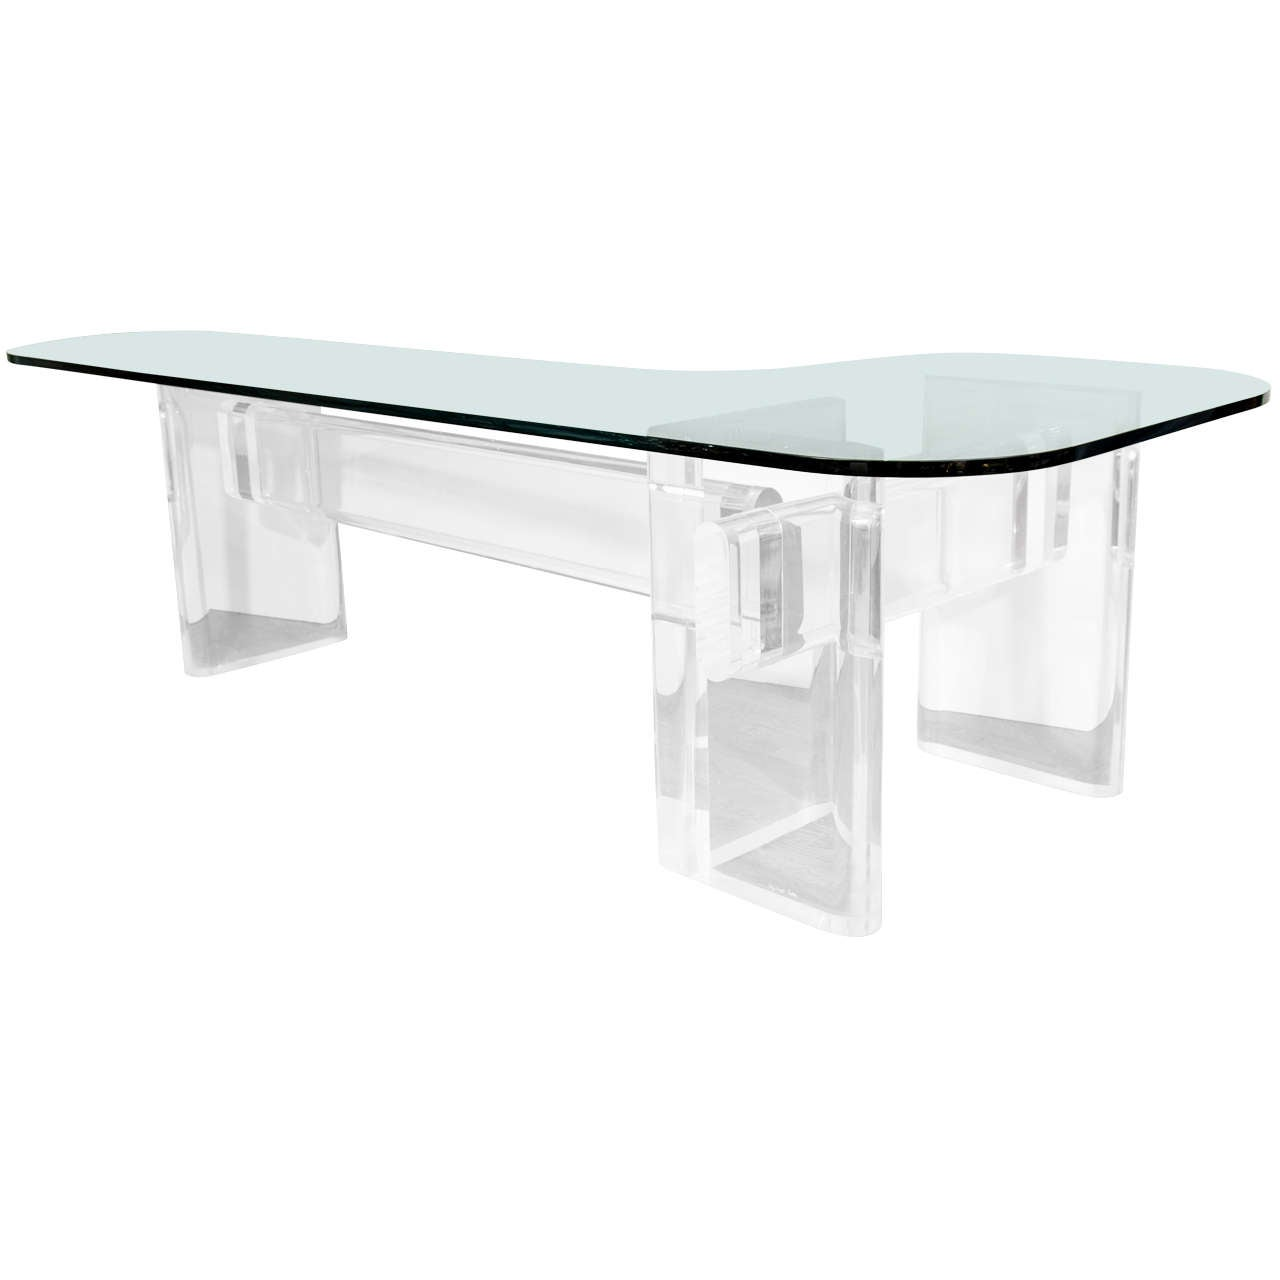 Custom Made quotlquot Shaped Lucite And Glass Desk By Karl  : X from www.1stdibs.com size 1280 x 1280 jpeg 34kB